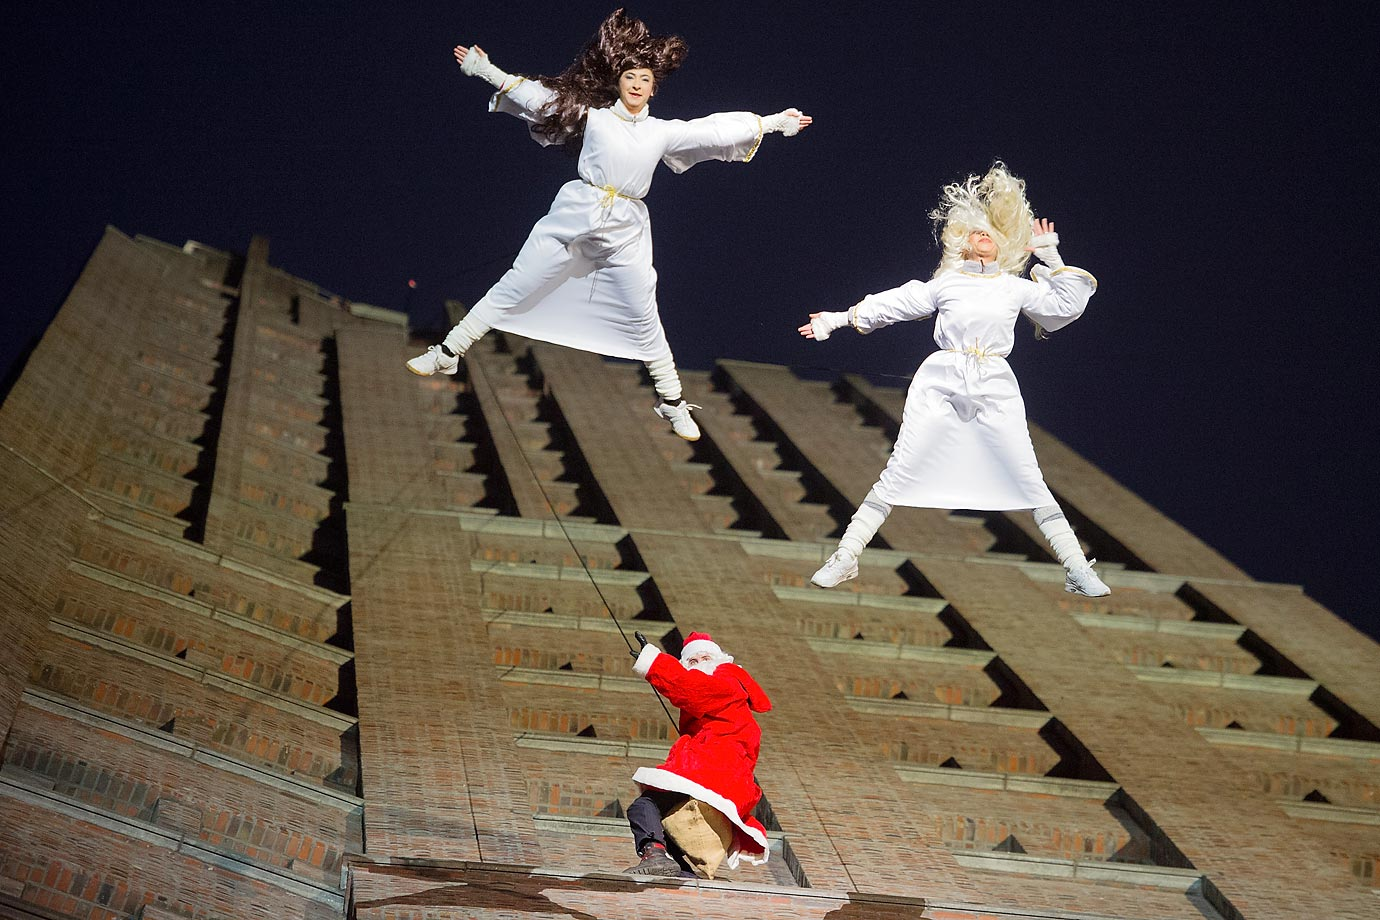 Climbers dressed as Santa Claus and two angels perform in an acrobatic dance show on the Kollhoff Tower in Berlin.